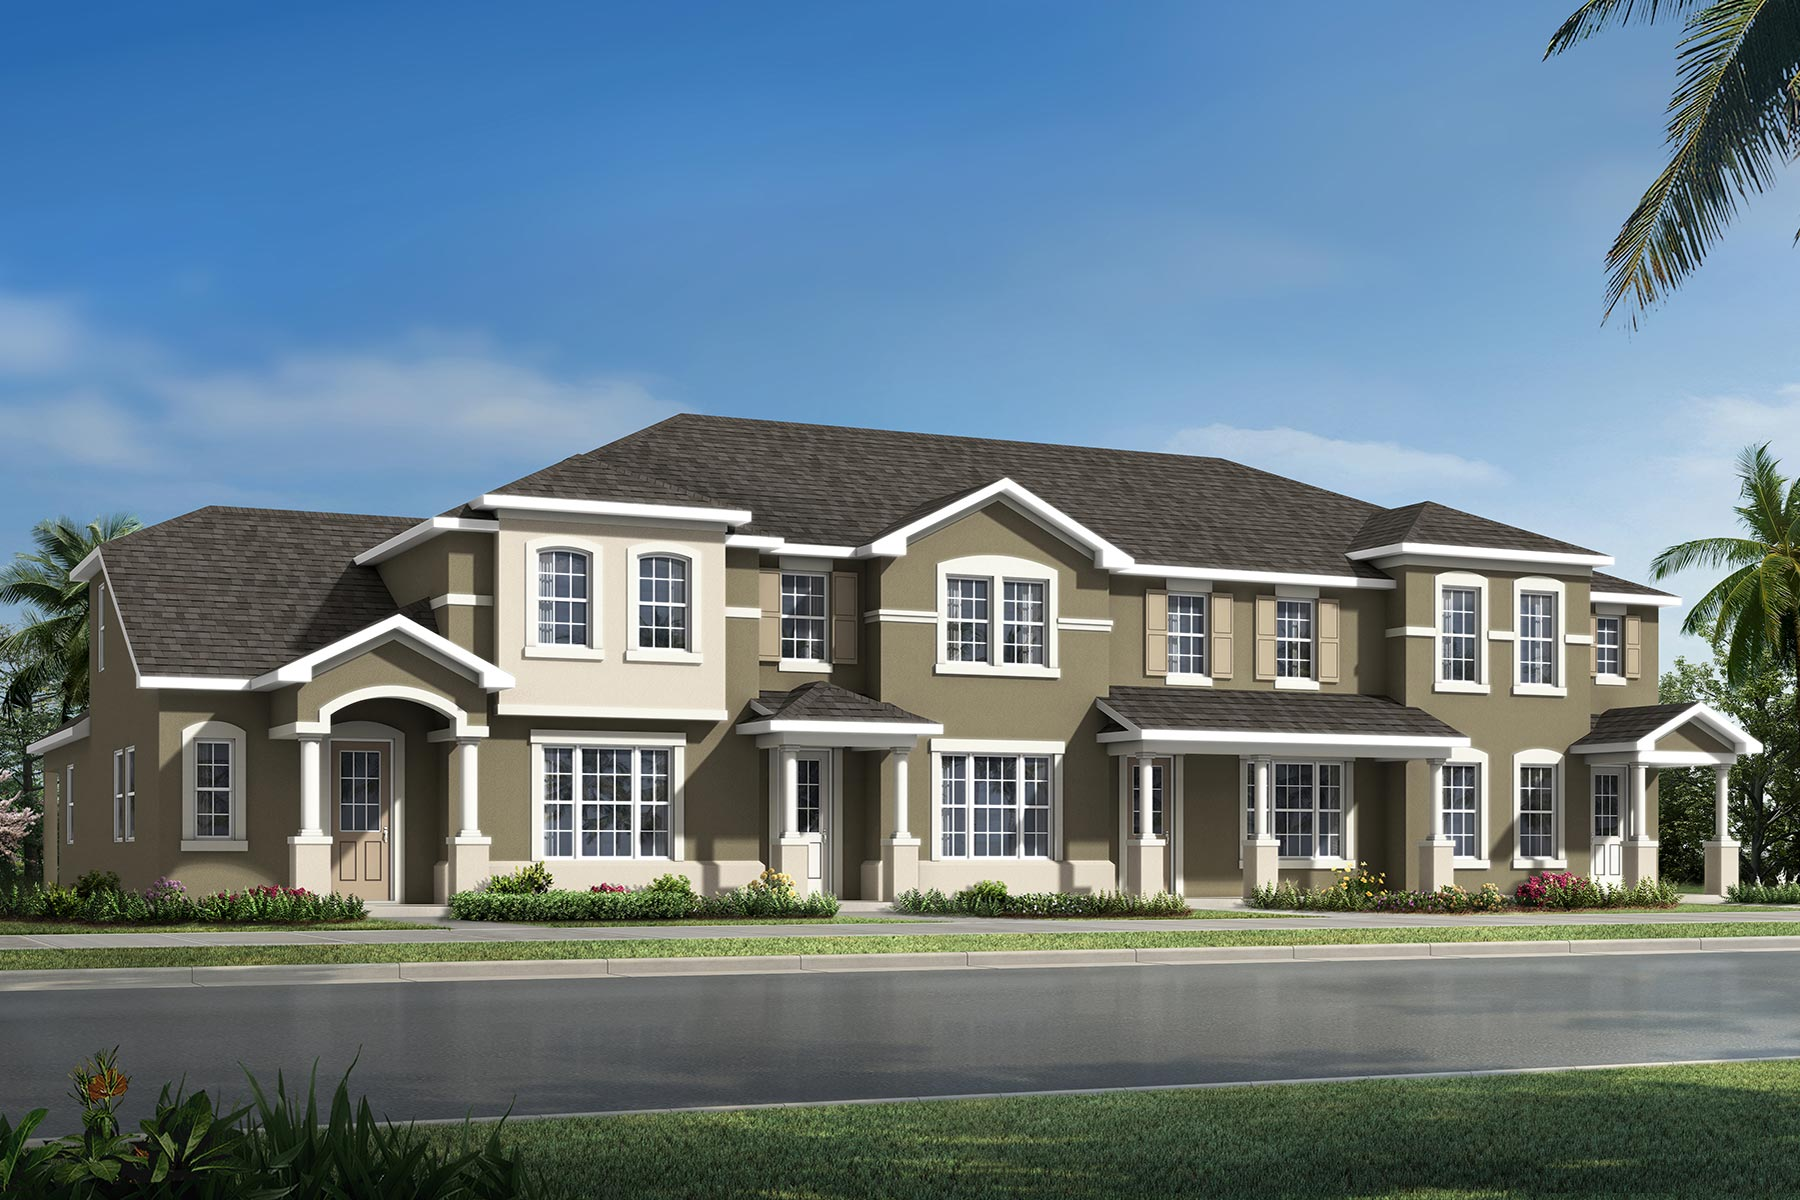 Francesca III Plan TownHomes at Randal Walk in Orlando Florida by Mattamy Homes